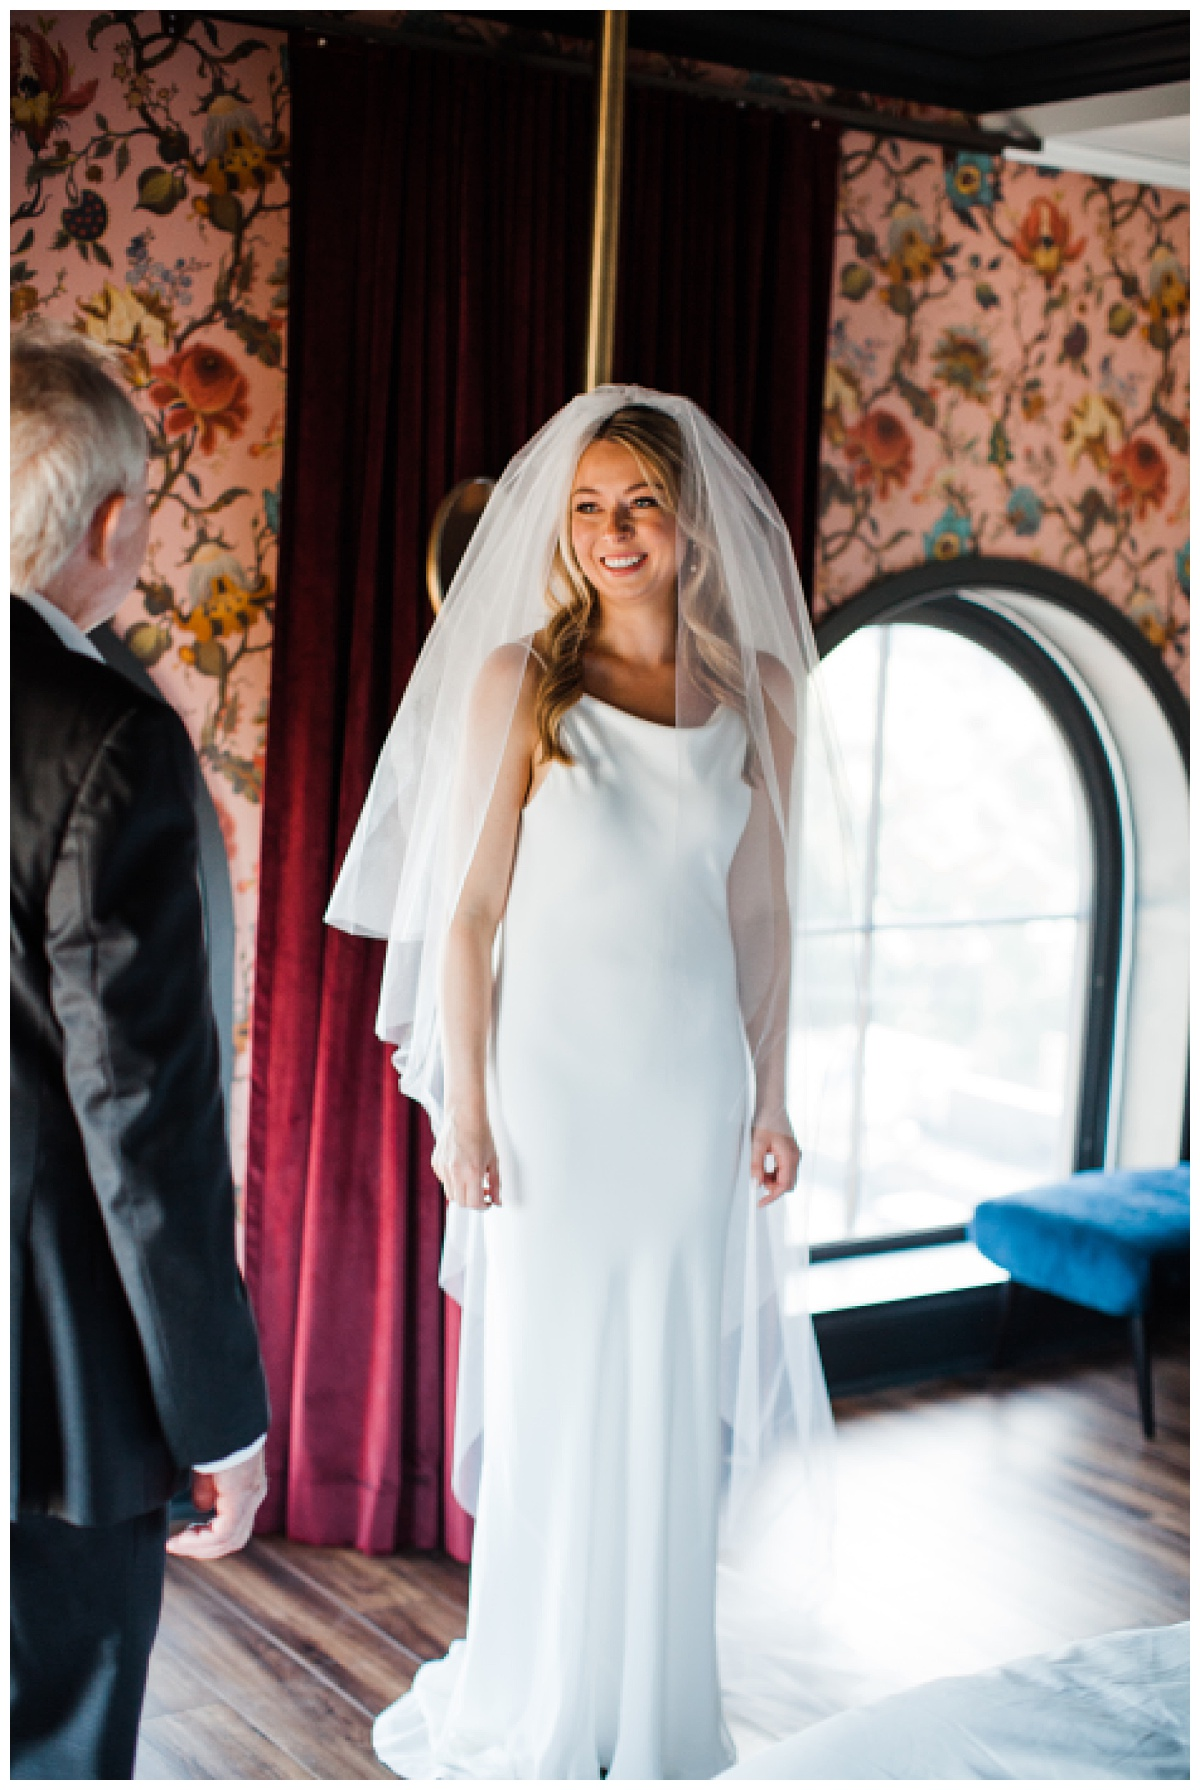 Bride smiling at father at first look